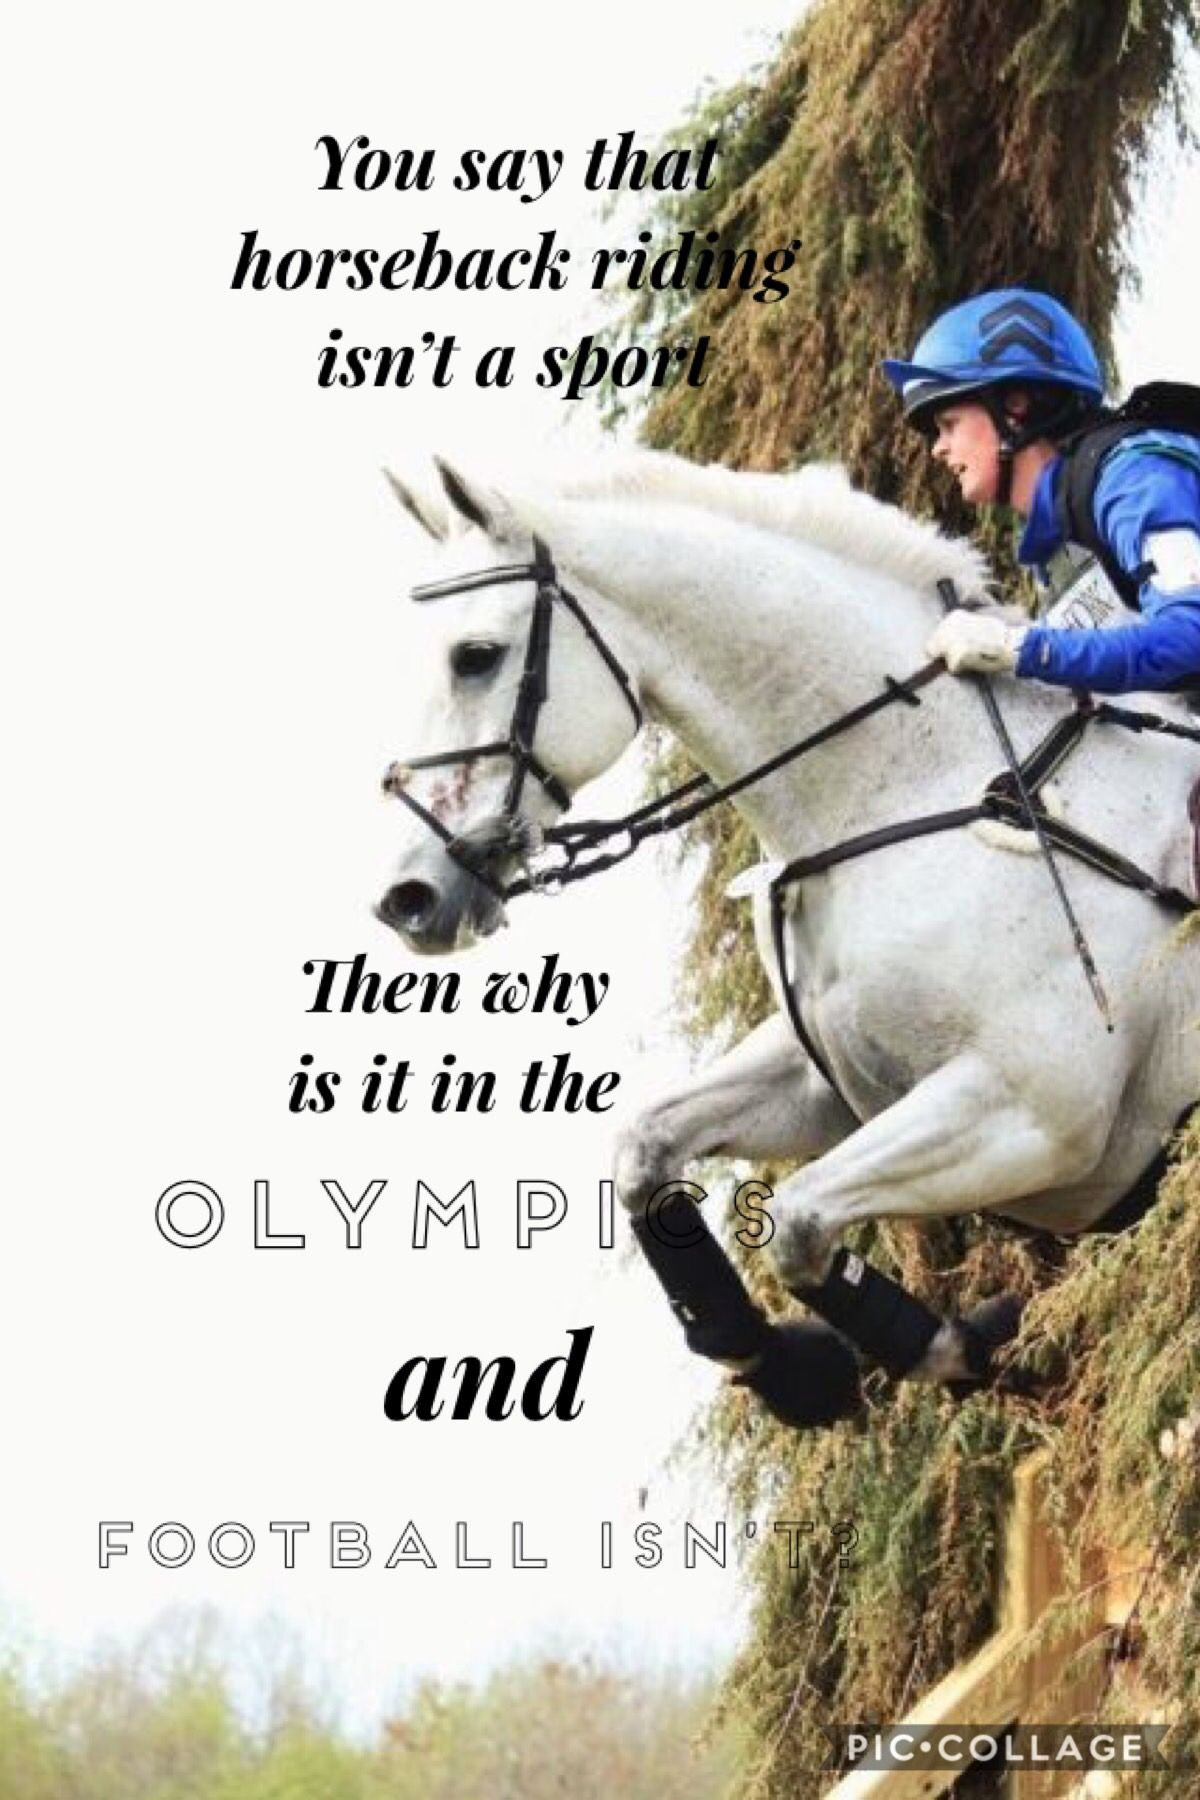 In Your Face Vince Equestrian Quotes Horse Riding Quotes Inspirational Horse Quotes